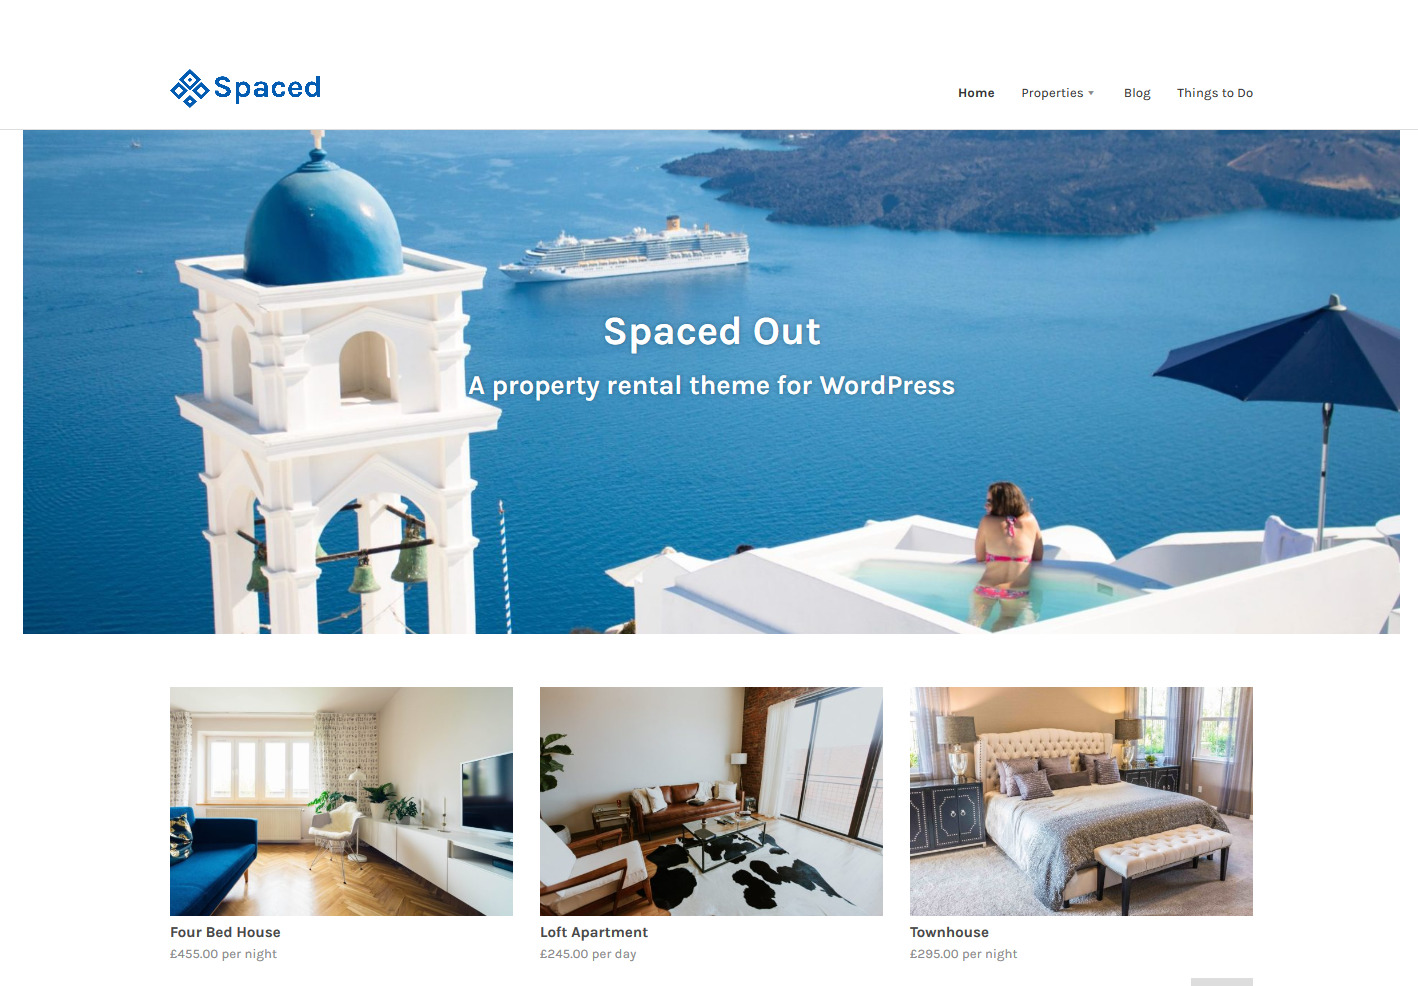 Spaced – Property rental theme WordPress